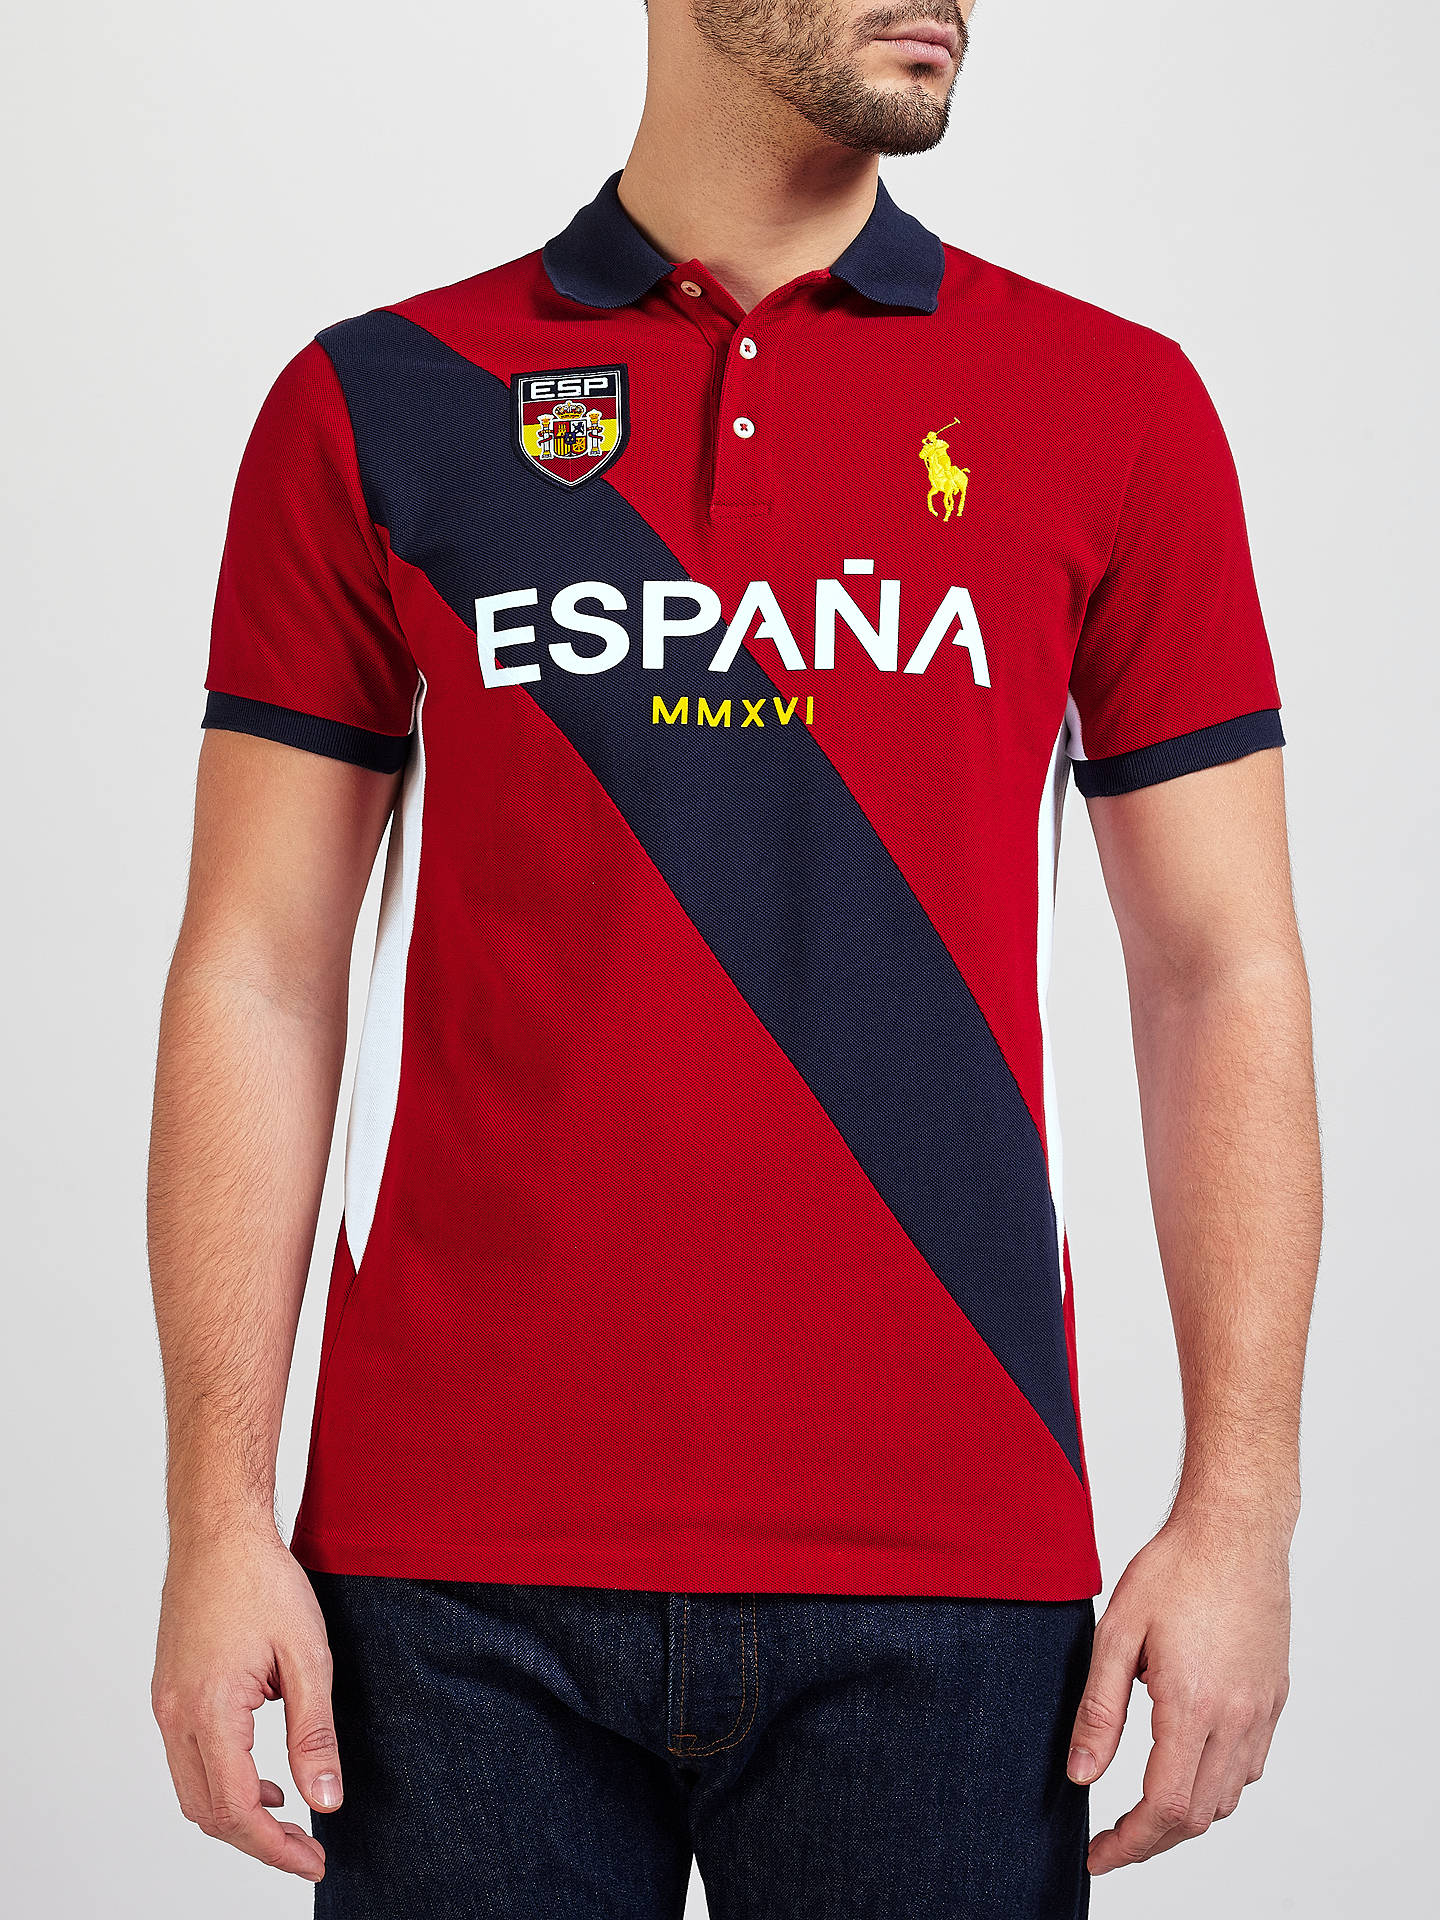 5cbcaf813154 Polo Ralph Lauren Spain Polo Shirt, Country Red/Multi at John Lewis ...